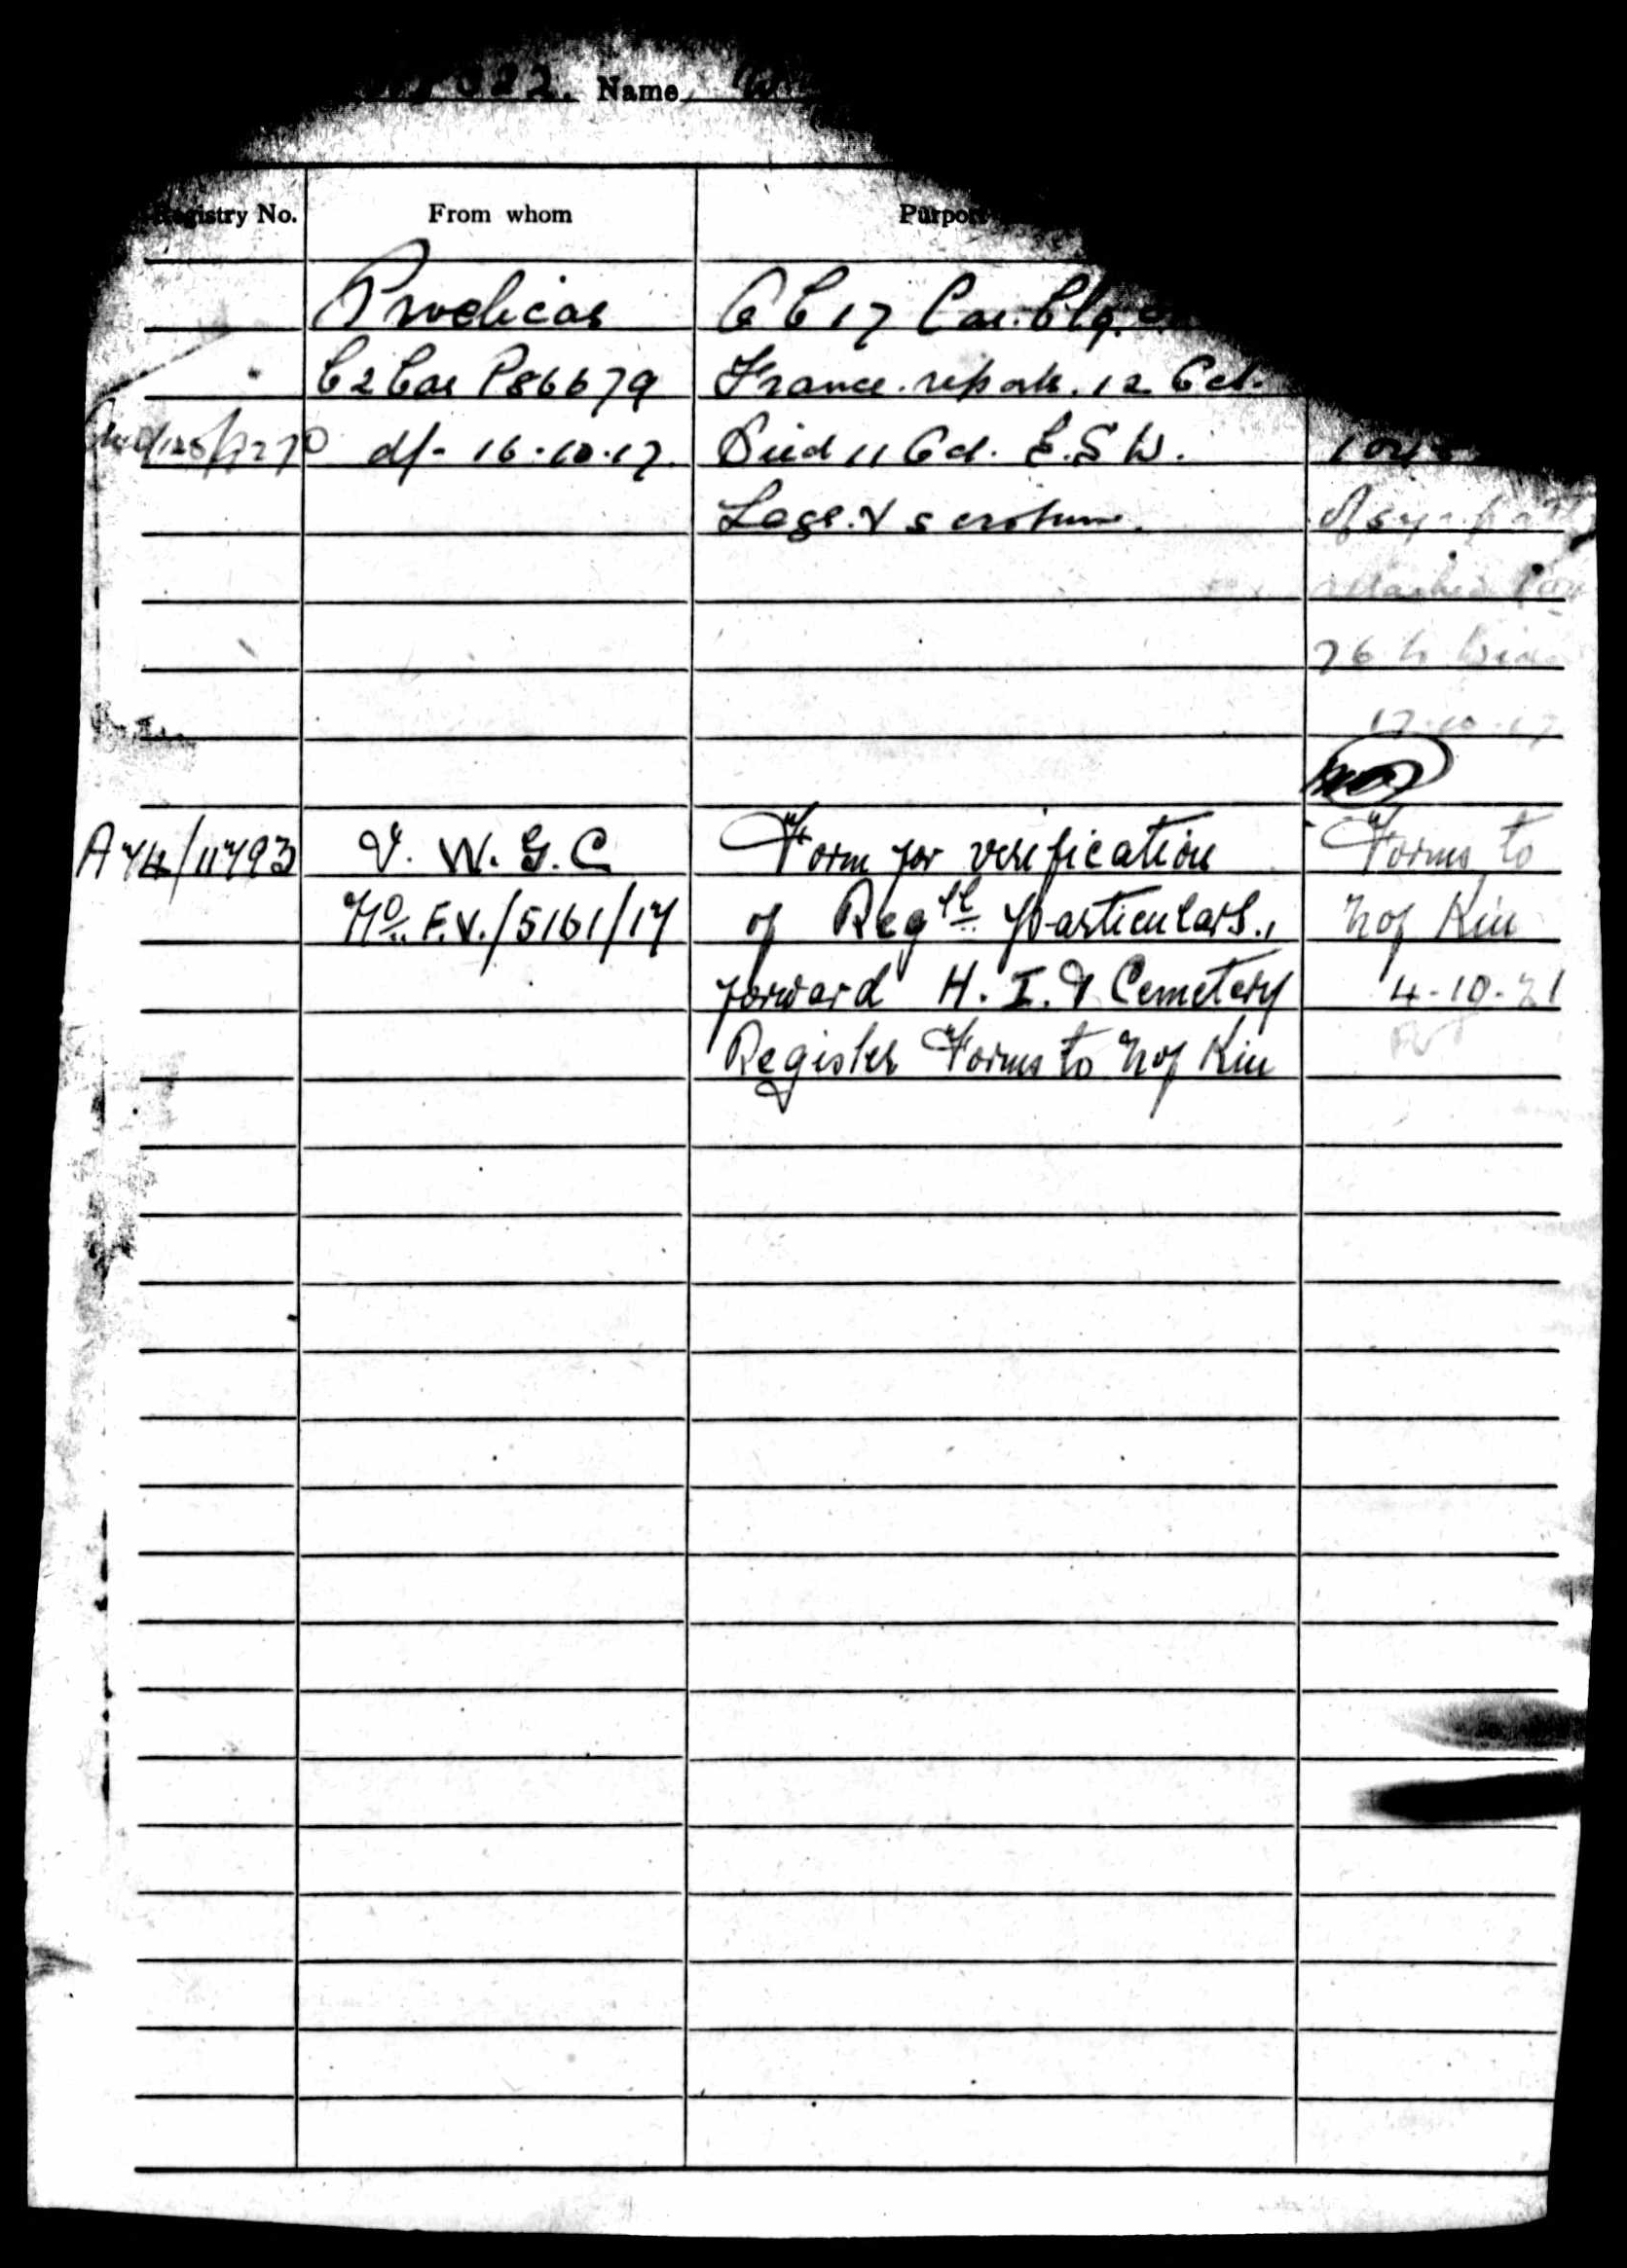 1916-1917 - Day, Walter Sidney - Service Record - MIUK1914H_132377-00487